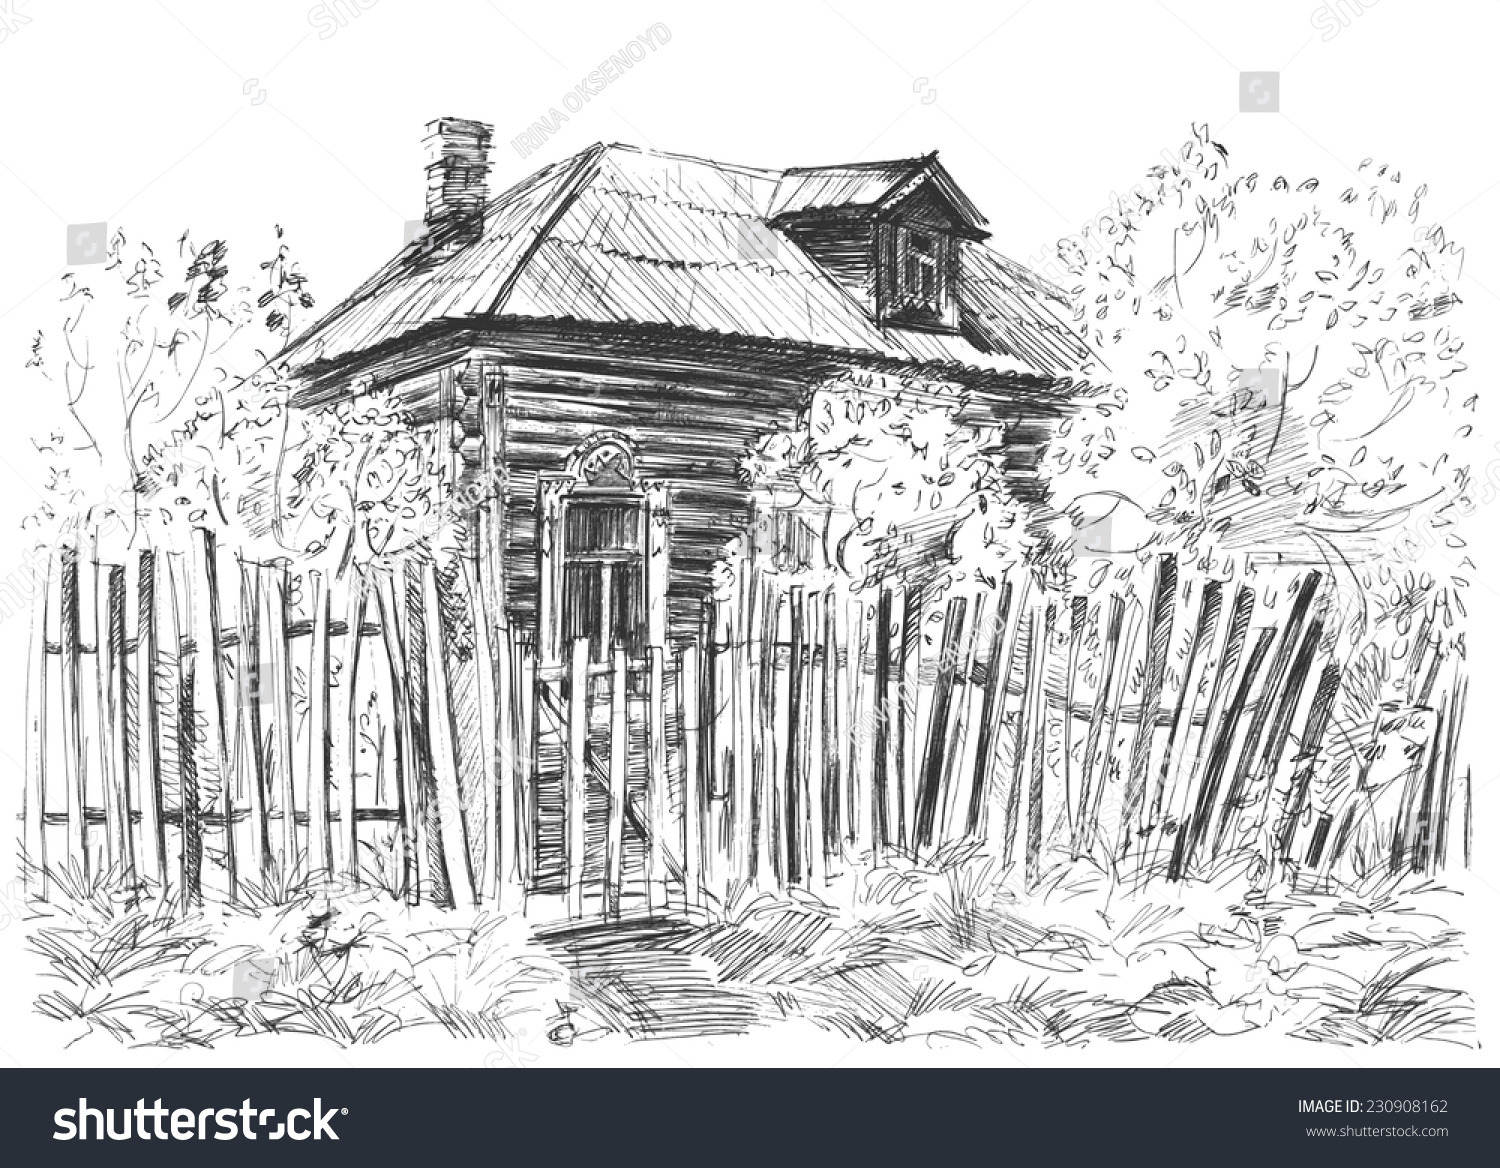 Sketch old wooden house rickety fence stock vector 230908162 a sketch of old wooden house with rickety fence and bushes around it russian countryside baanklon Choice Image